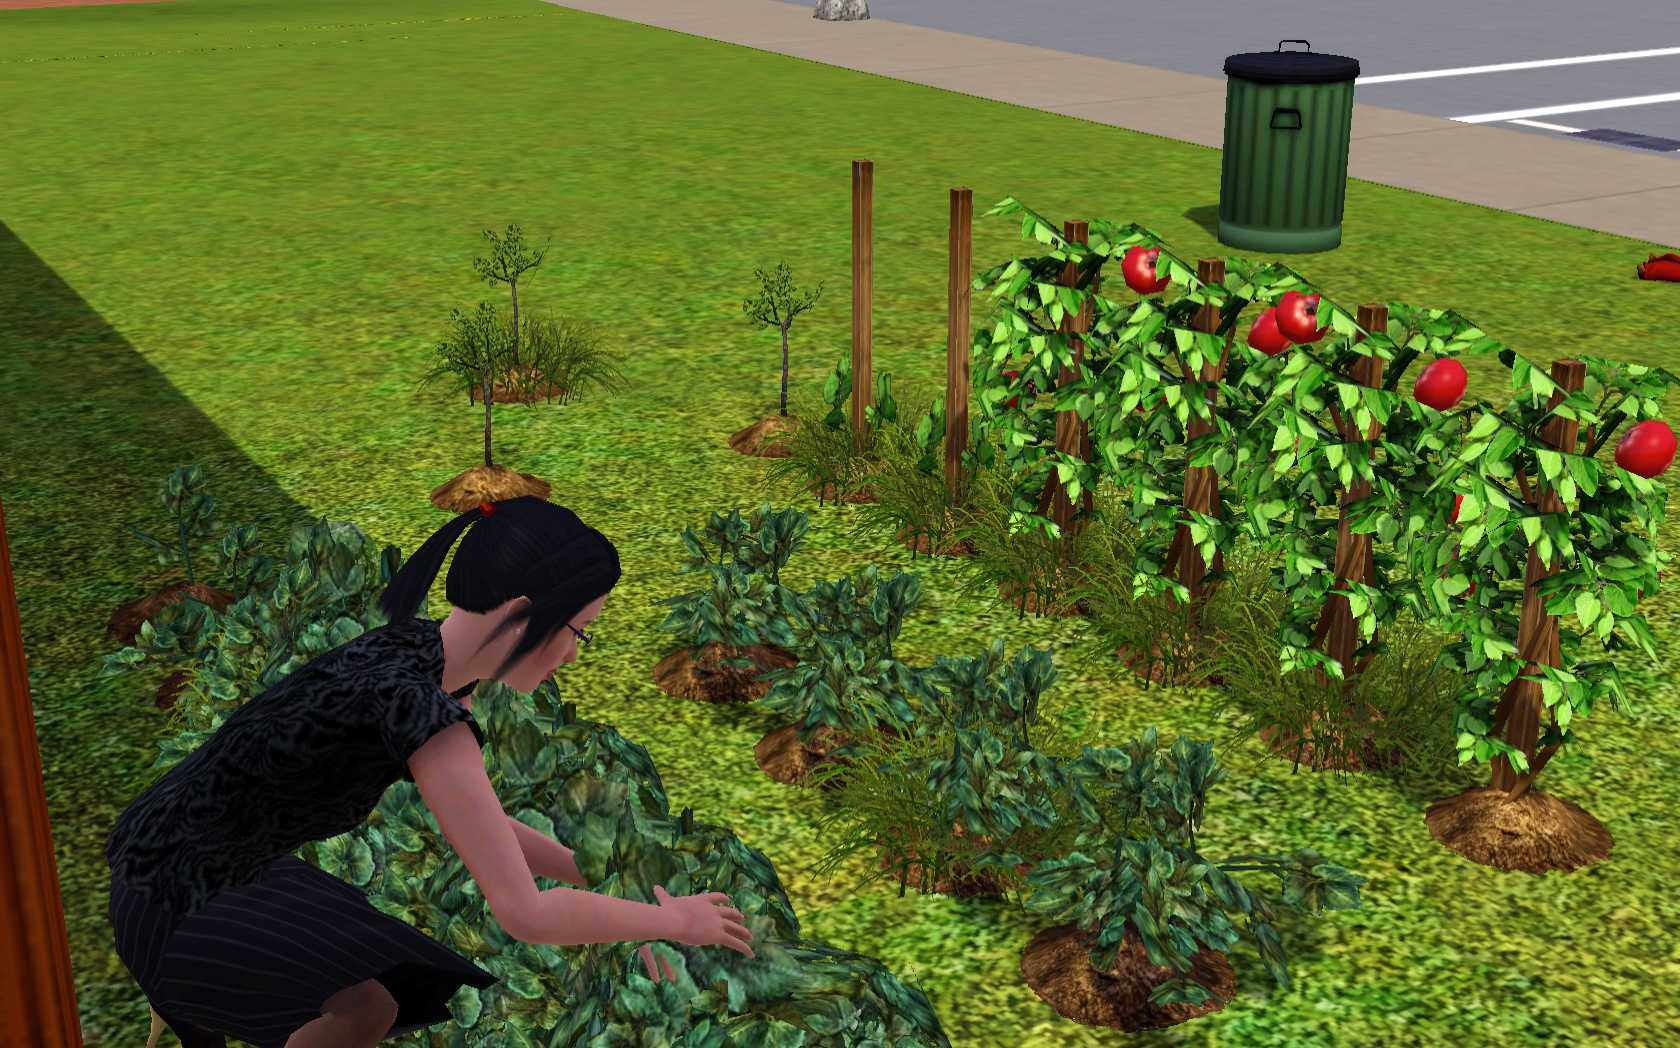 The Sims 3 Skills List Information And Tips 89 Club Car Golf Cart Wiring Diagram Gardening In